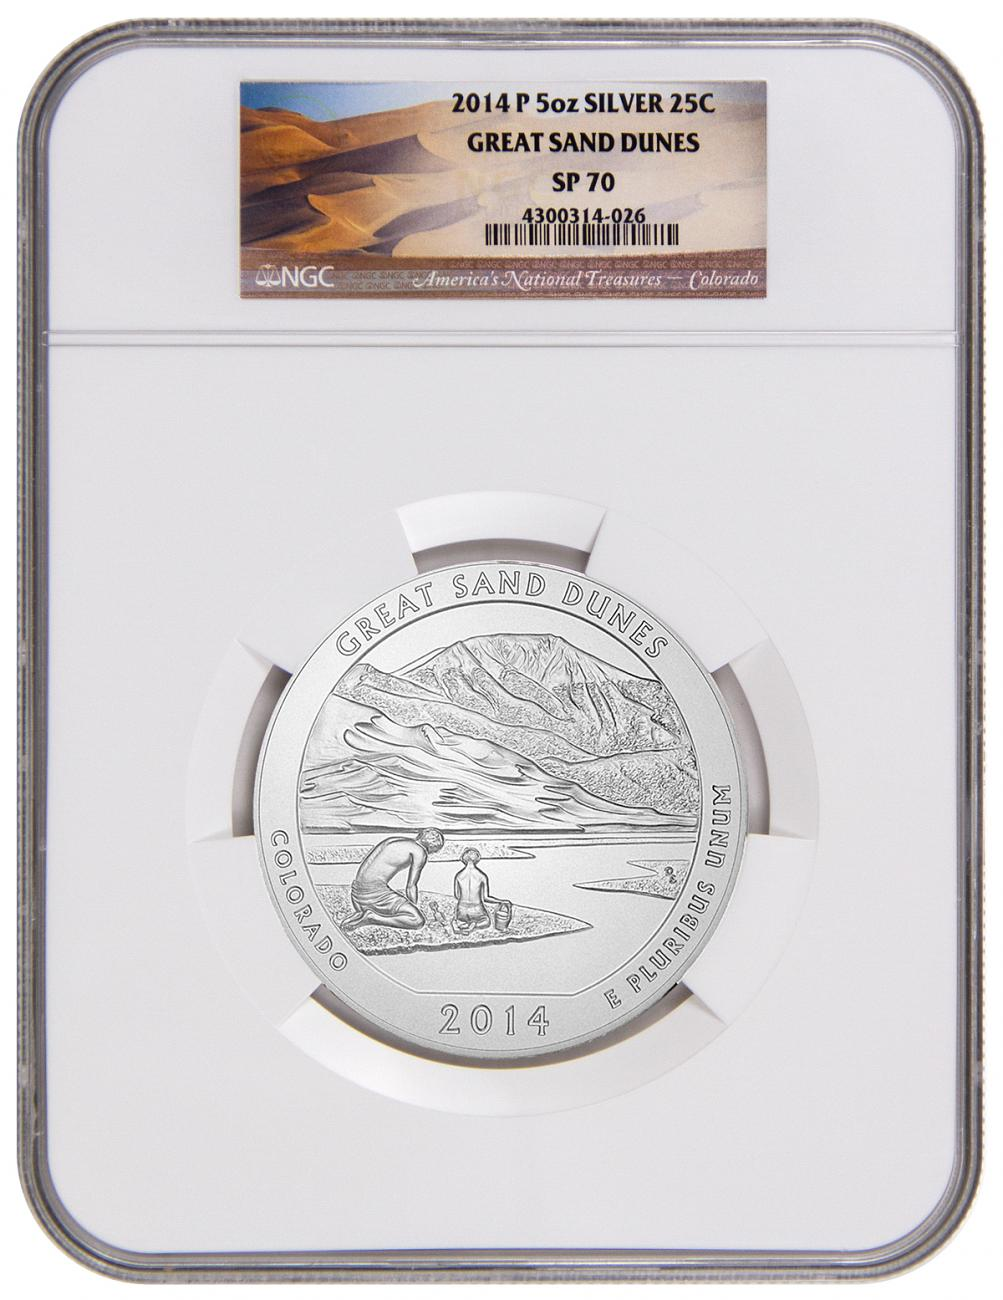 2014-P Great Sand Dunes 5 oz. Silver America the Beautiful Specimen Coin NGC SP70